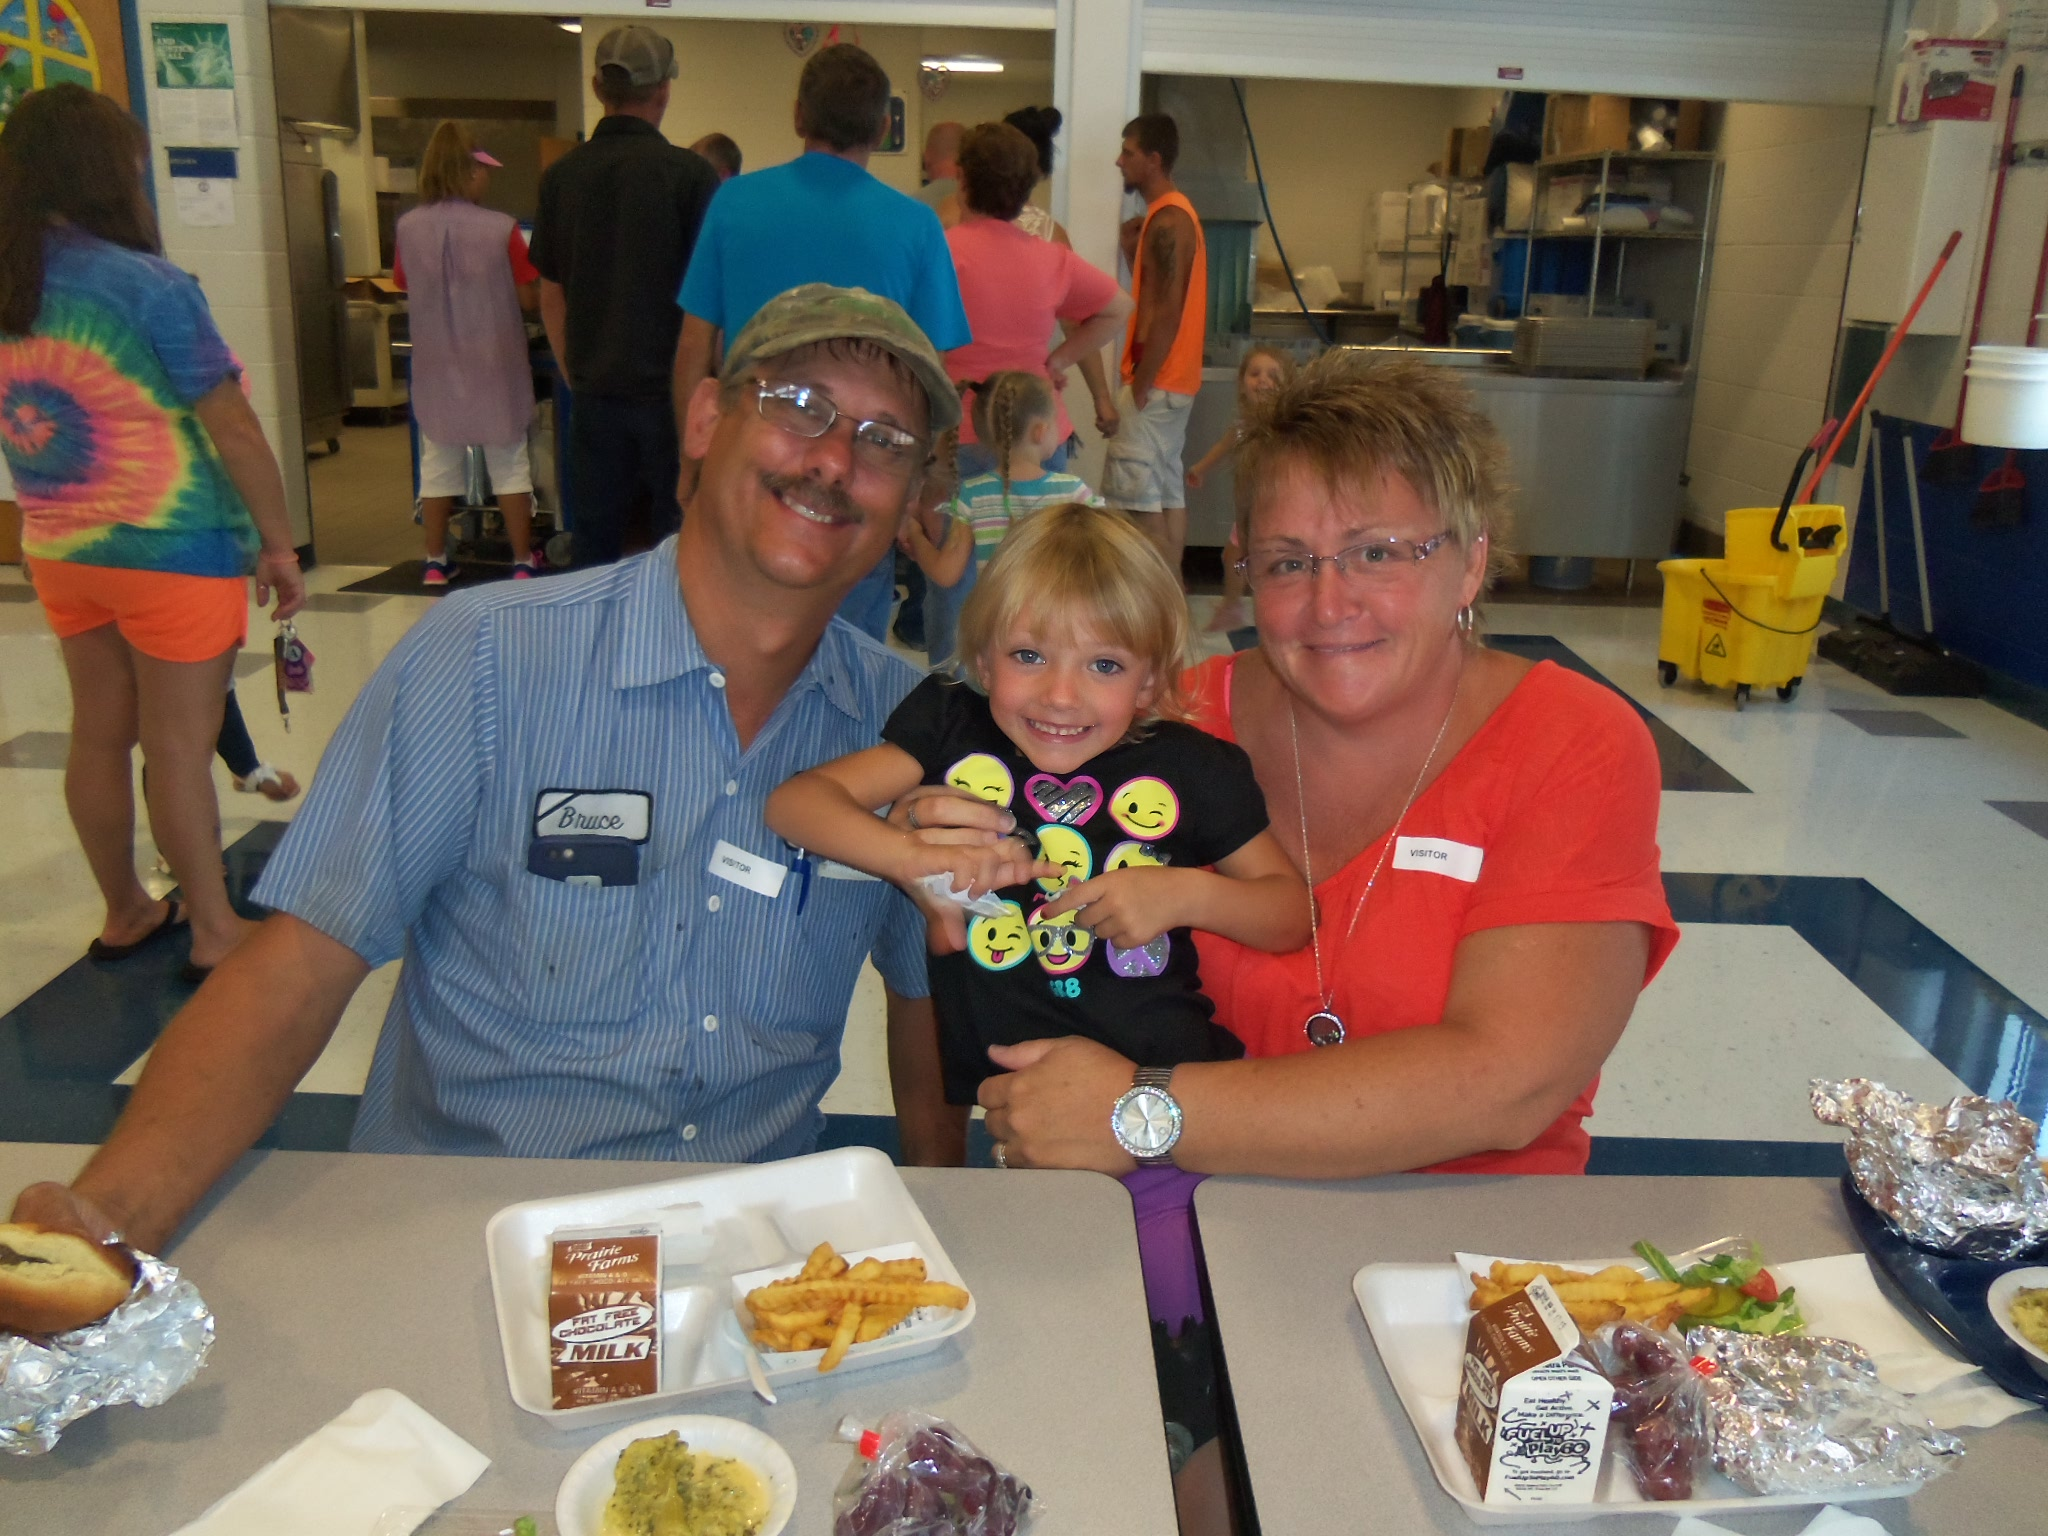 In honor of Grandparents Day on Sunday, September 11th, the Early Childhood Center celebrated by inviting grandparents to visit ECC and eat lunch with their grandchildren.